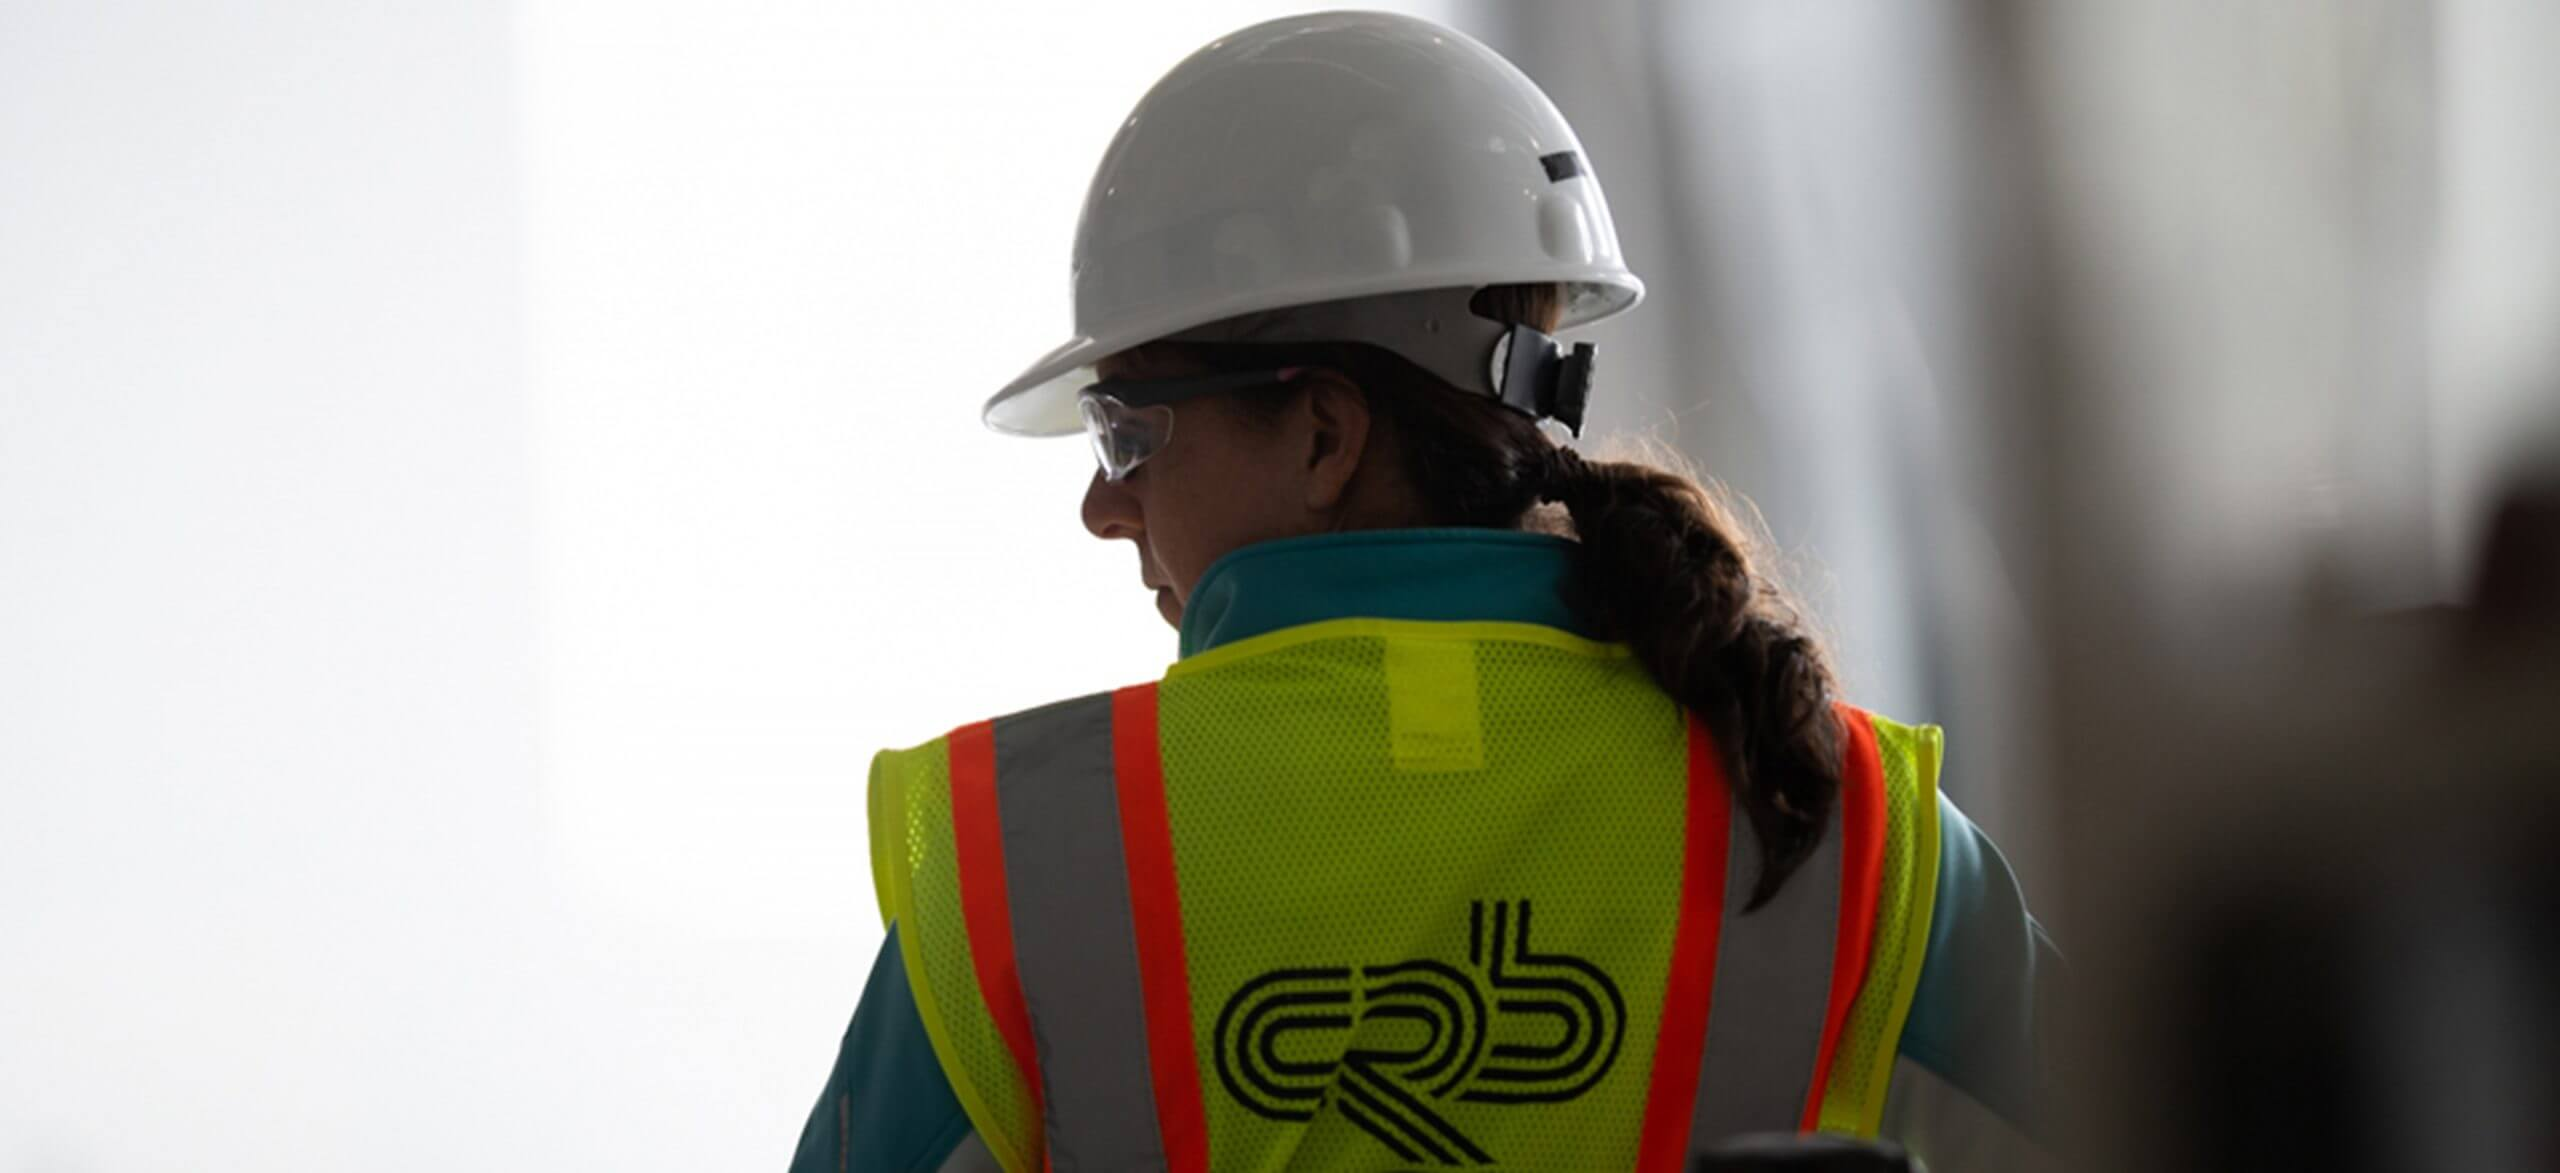 Female CRB construction employee in personal protection equipment